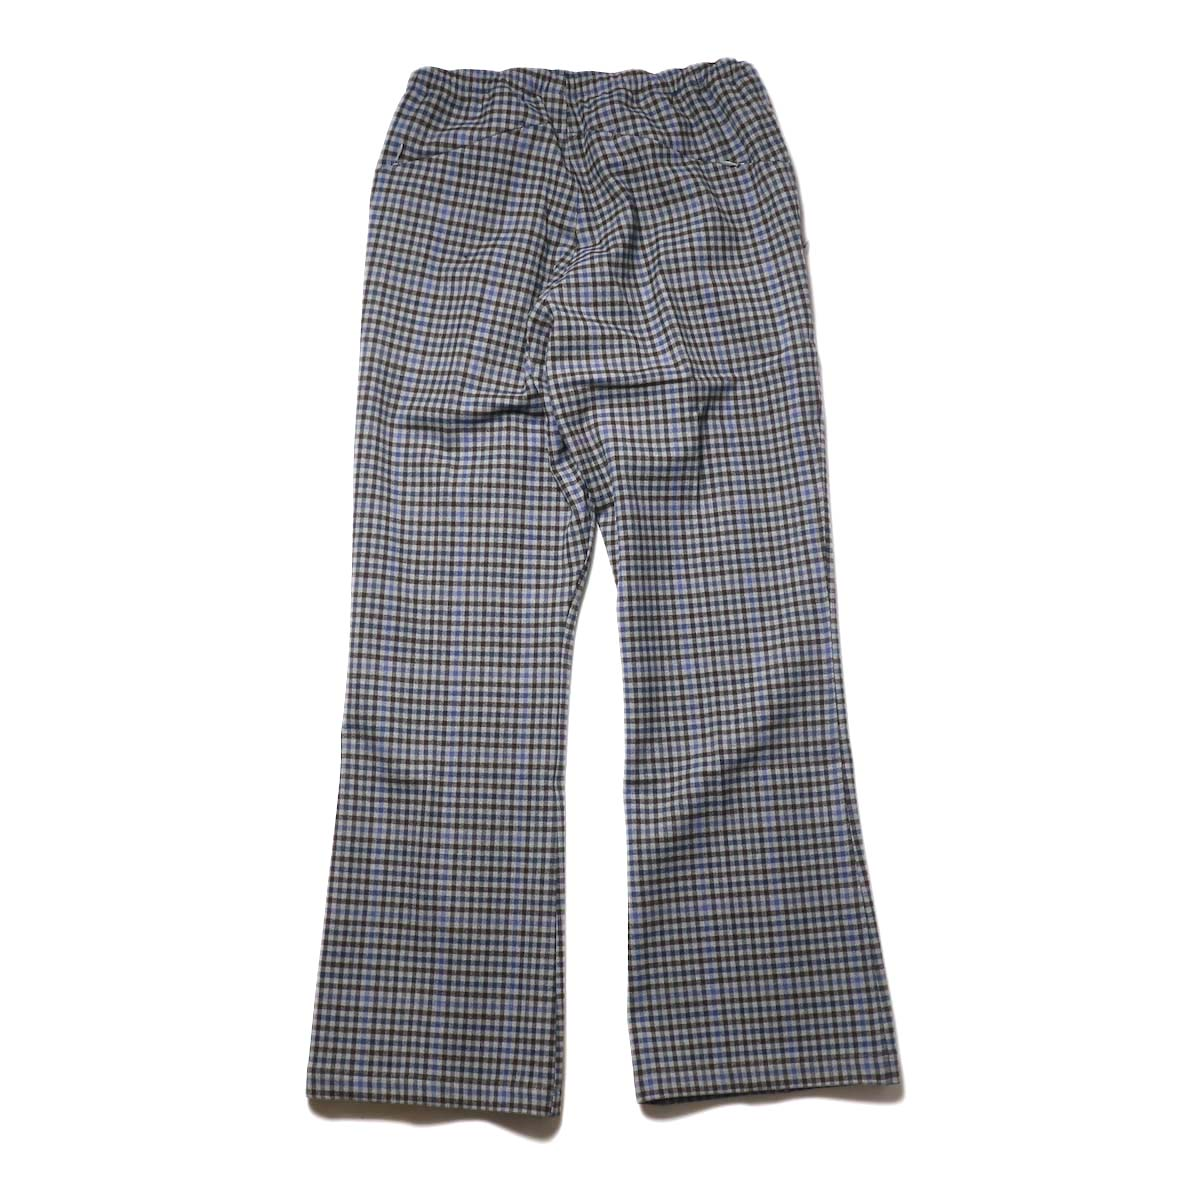 Needles / W.U. Boot-Cut Pant -Gunclub Plaid (Grey) 背面